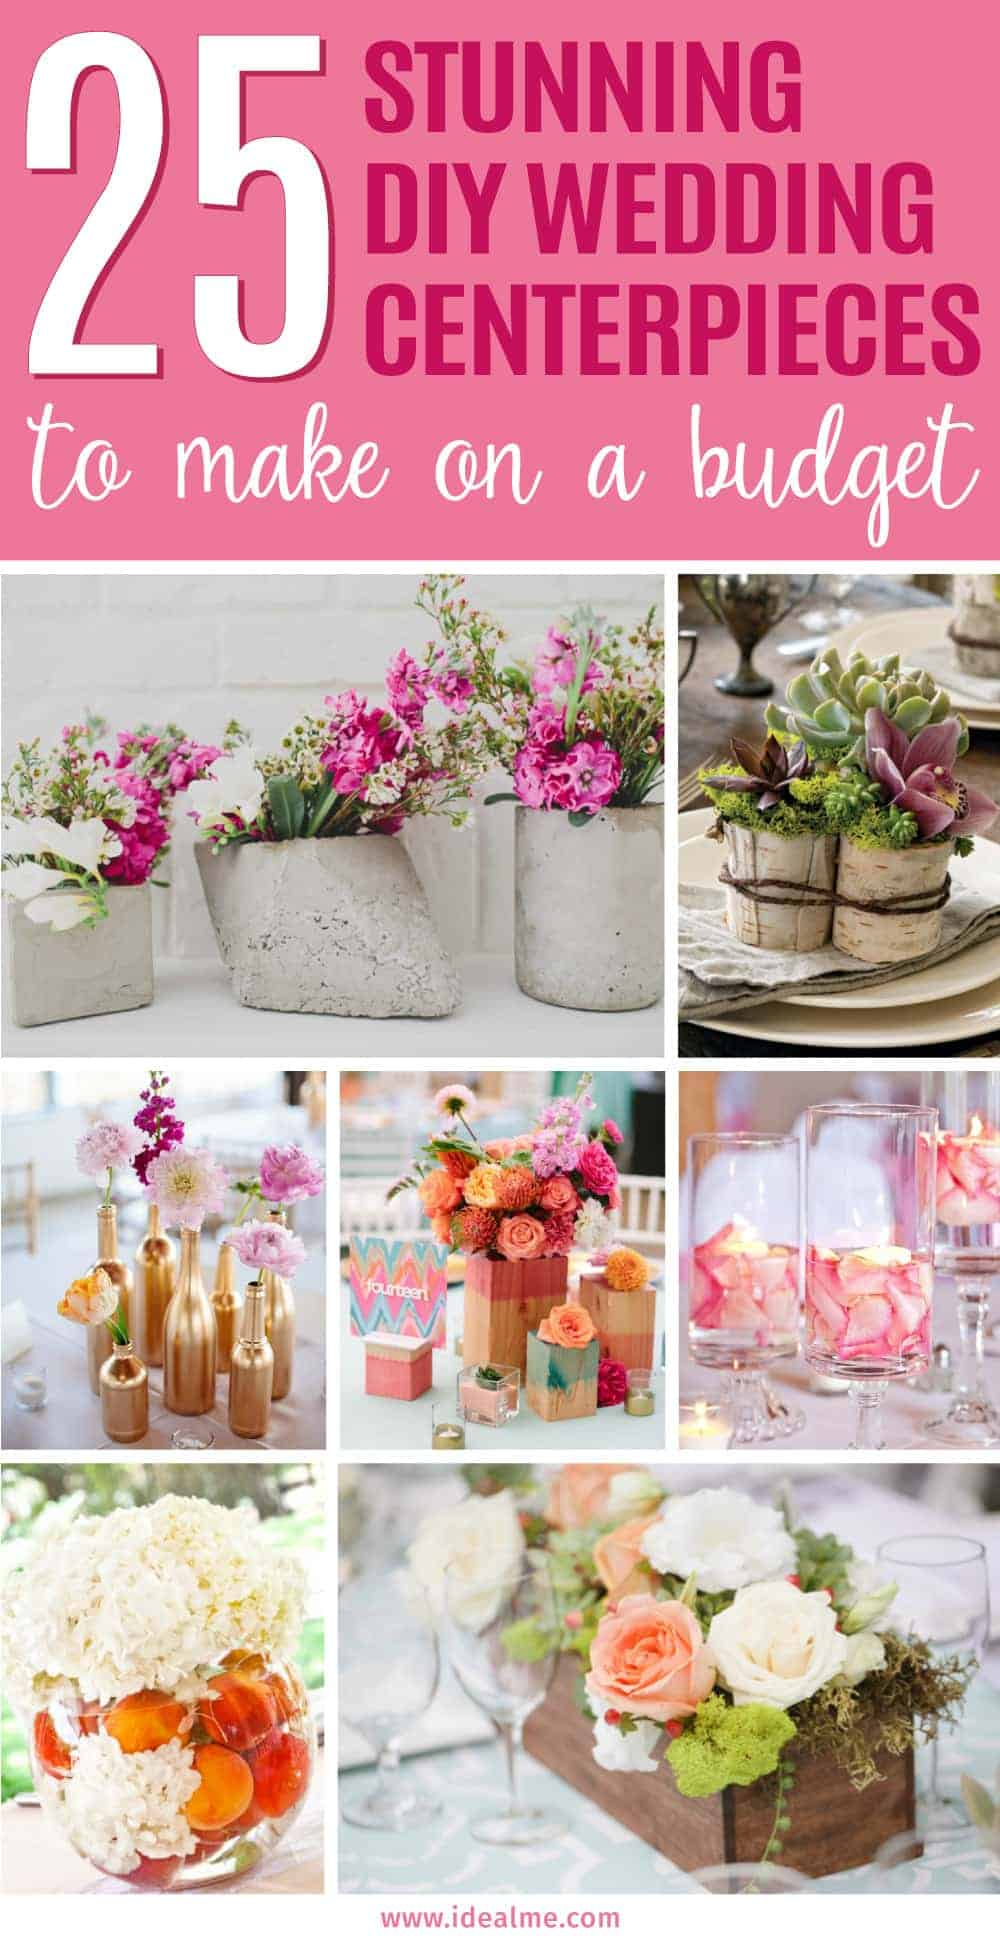 25 stunning diy wedding centerpieces to make on a budget ideal me believe it or not you can create stunning centerpieces without spending much at all junglespirit Image collections